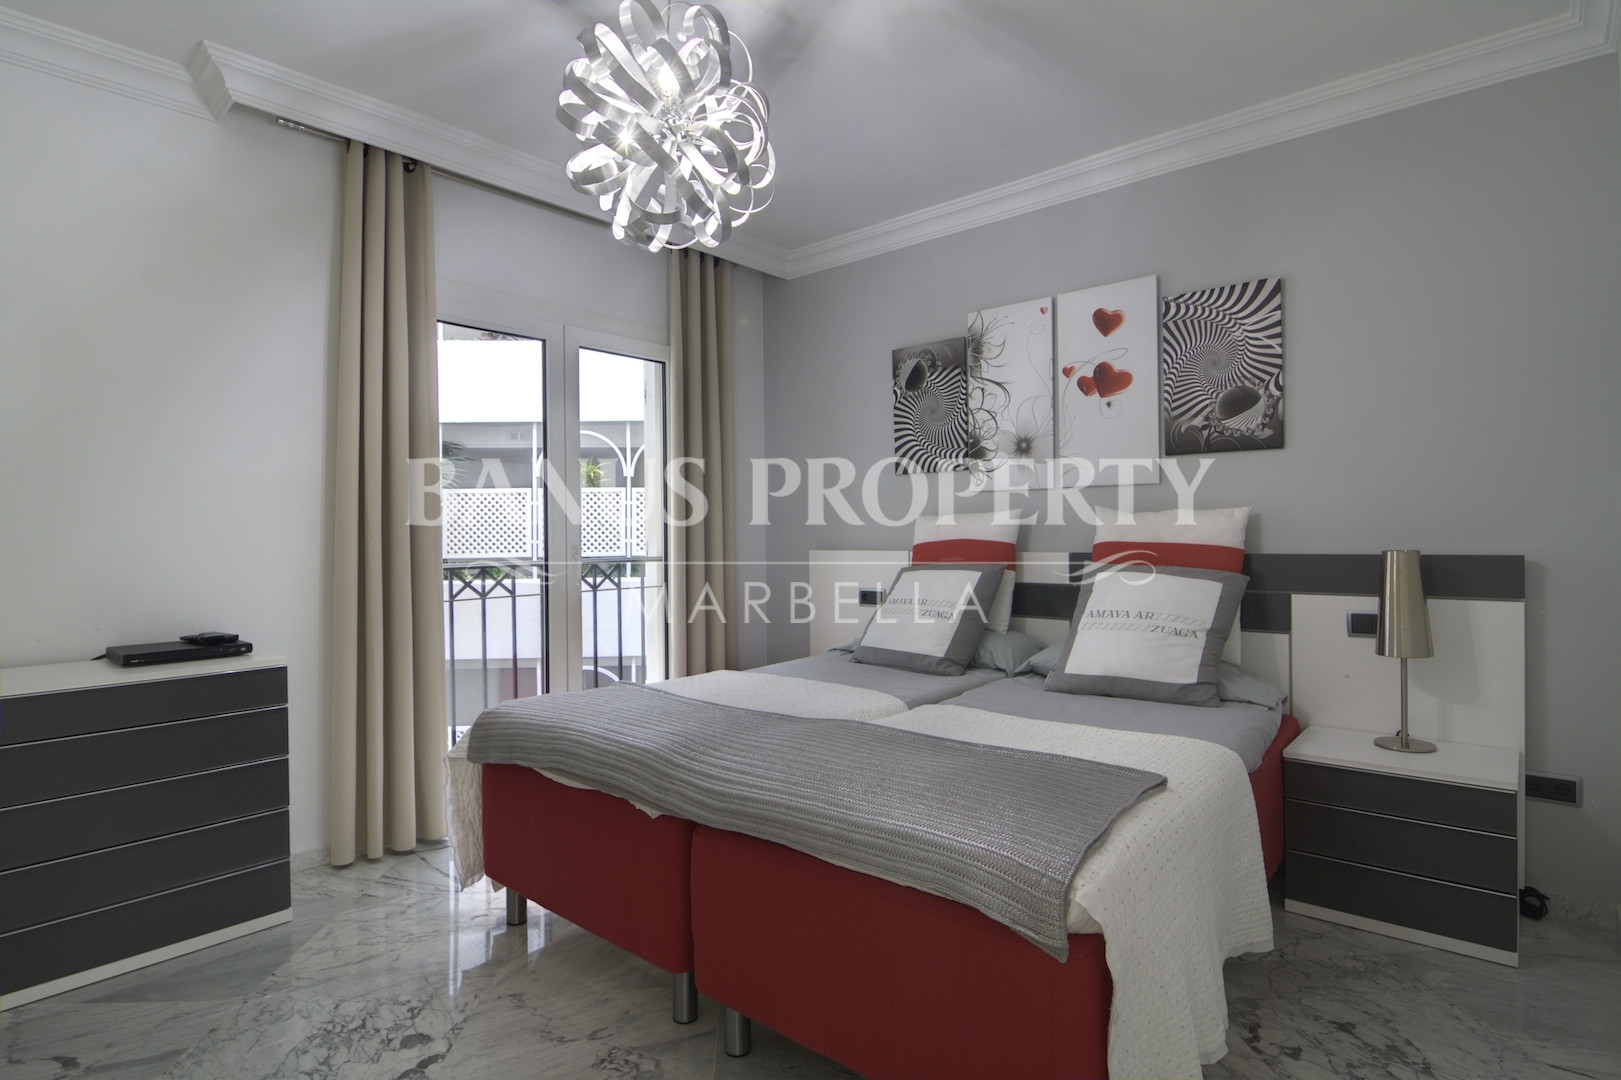 Renovated contemporary 3 bed luxury beachside apartment for sale in Edificio Sevilla, Playas del Duque